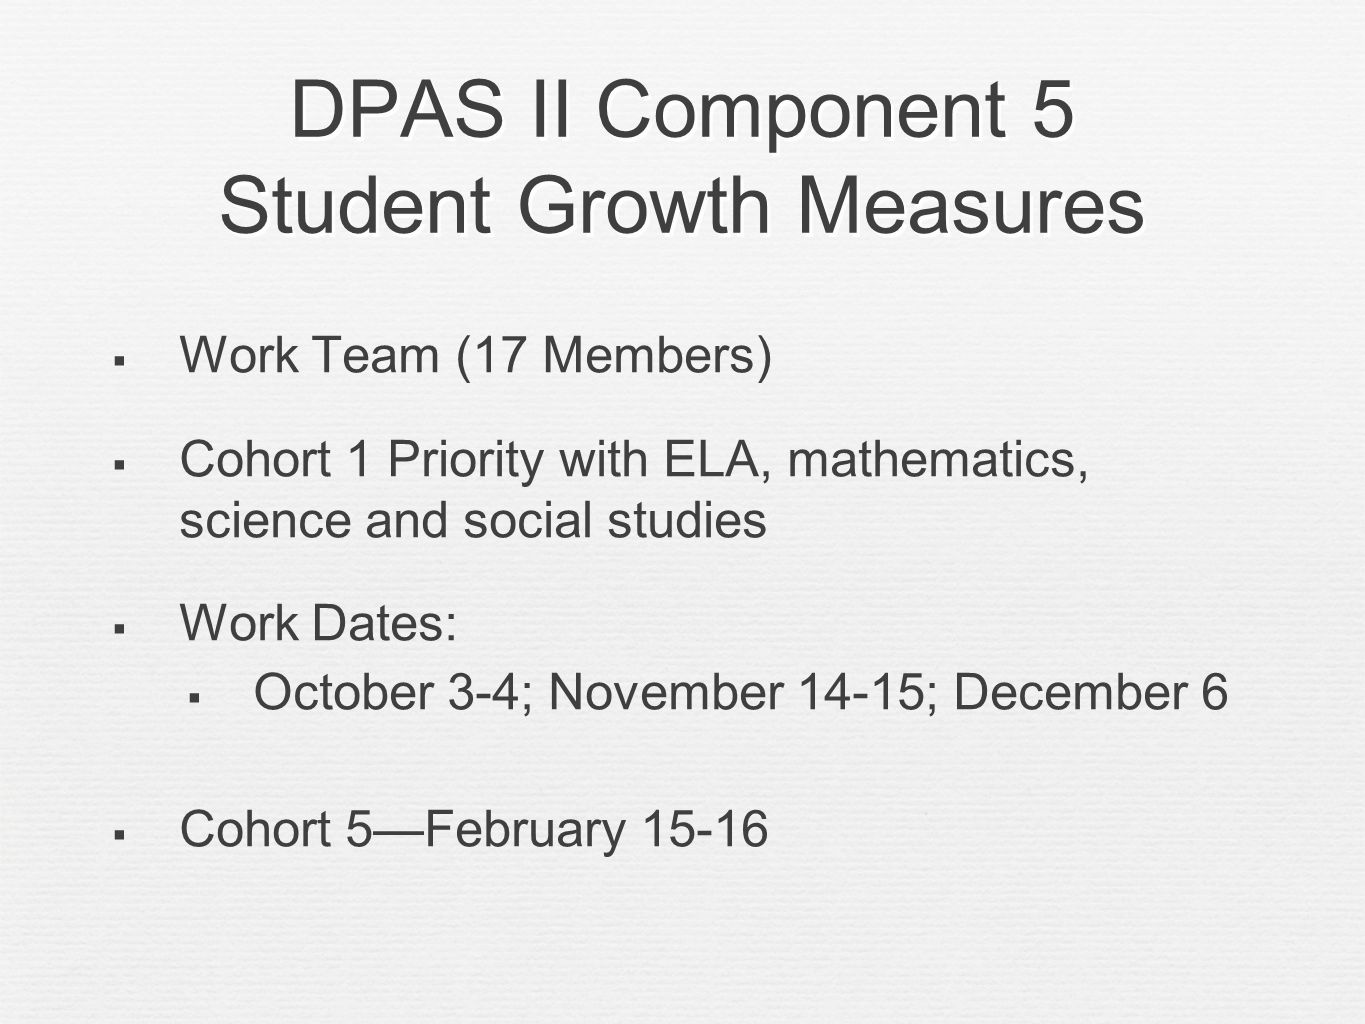 DPAS II Component 5 Student Growth Measures Work Team (17 Members) Cohort 1 Priority with ELA, mathematics, science and social studies Work Dates: Oct